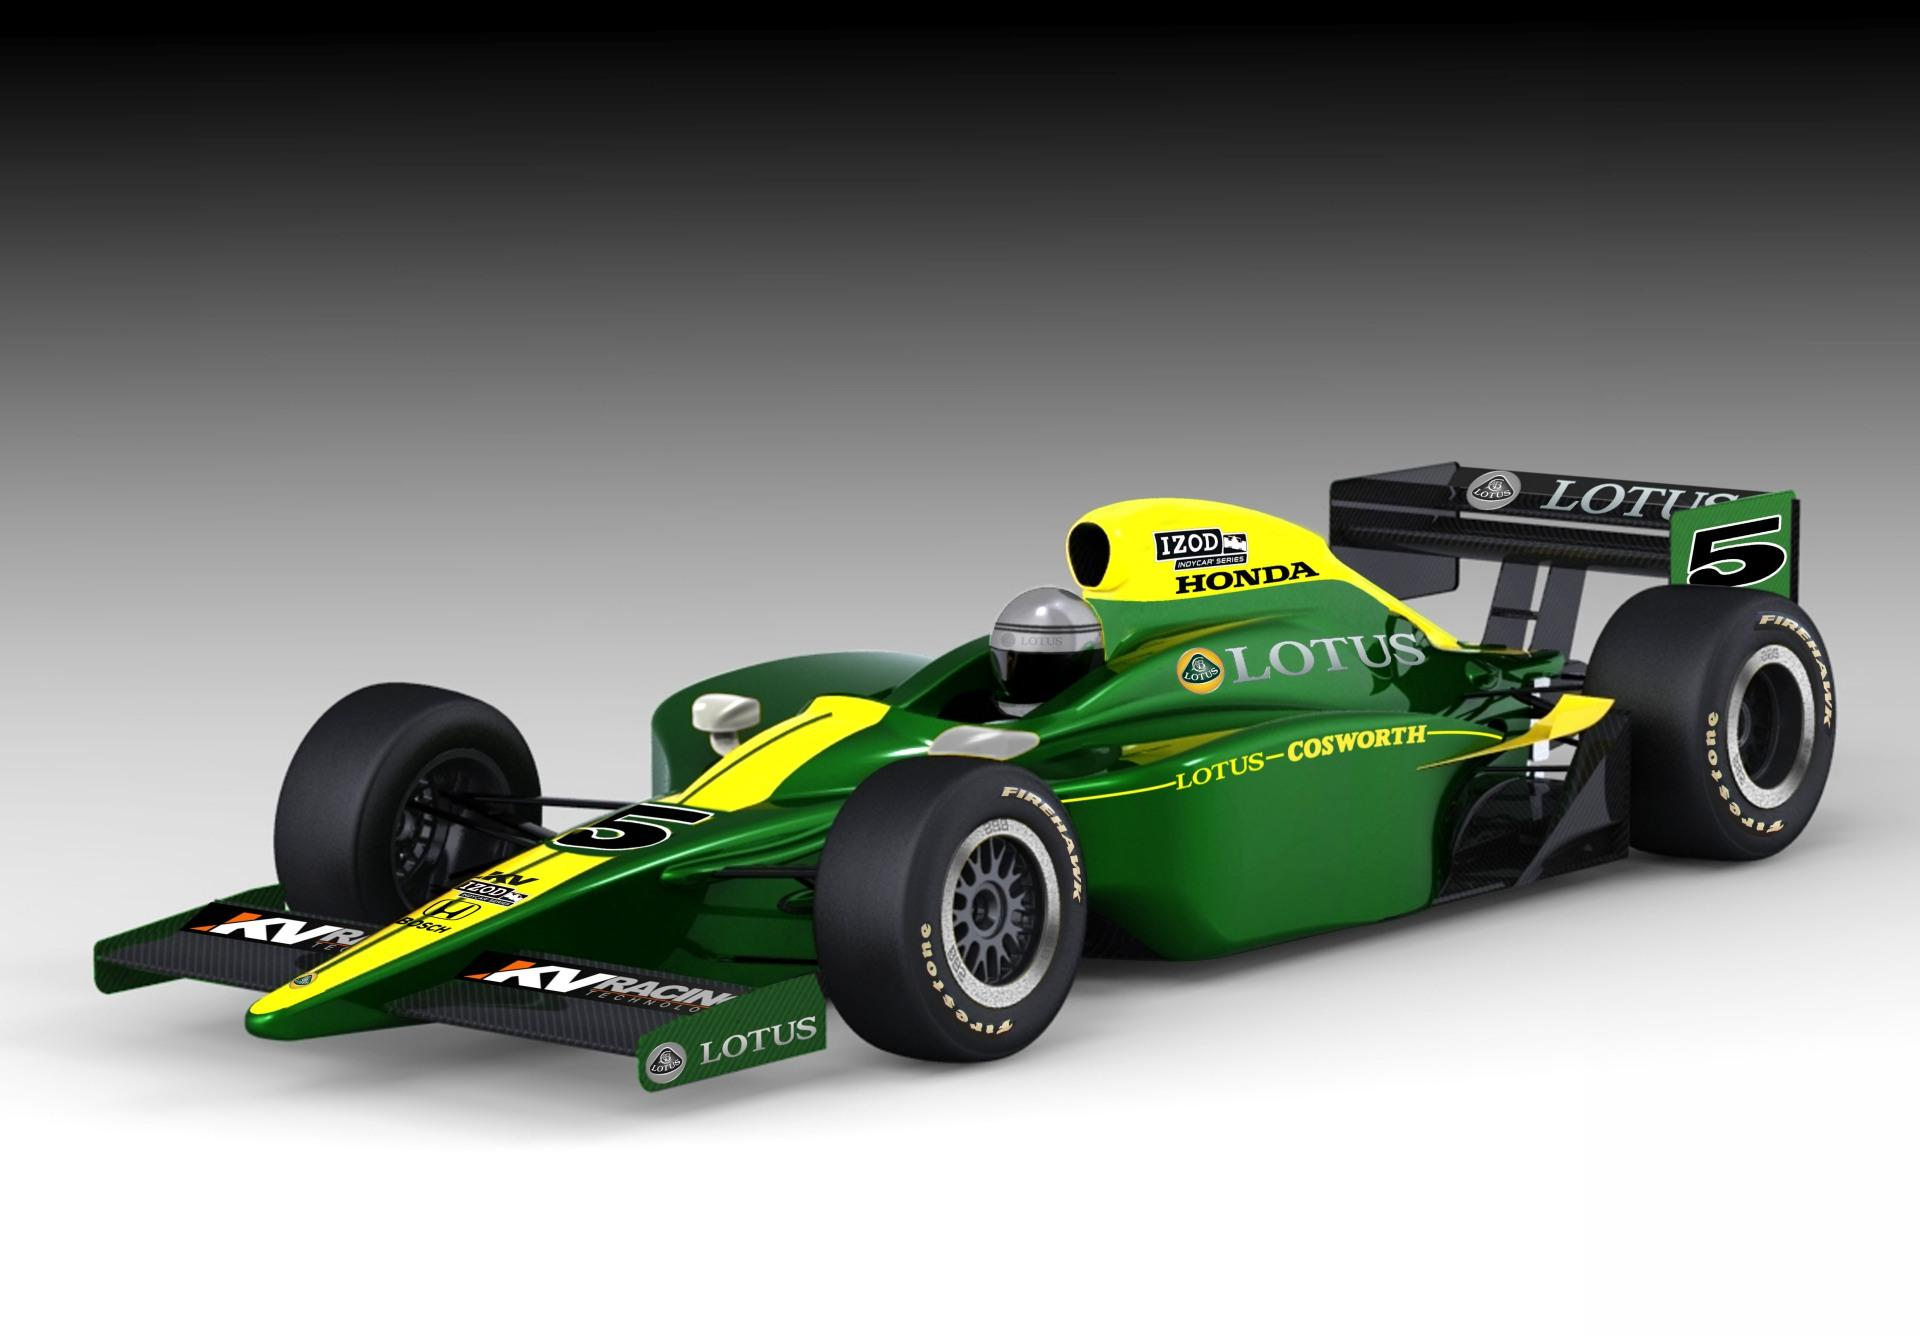 2010 Lotus Cosworth Indy Racer News and Information, Research, and ...